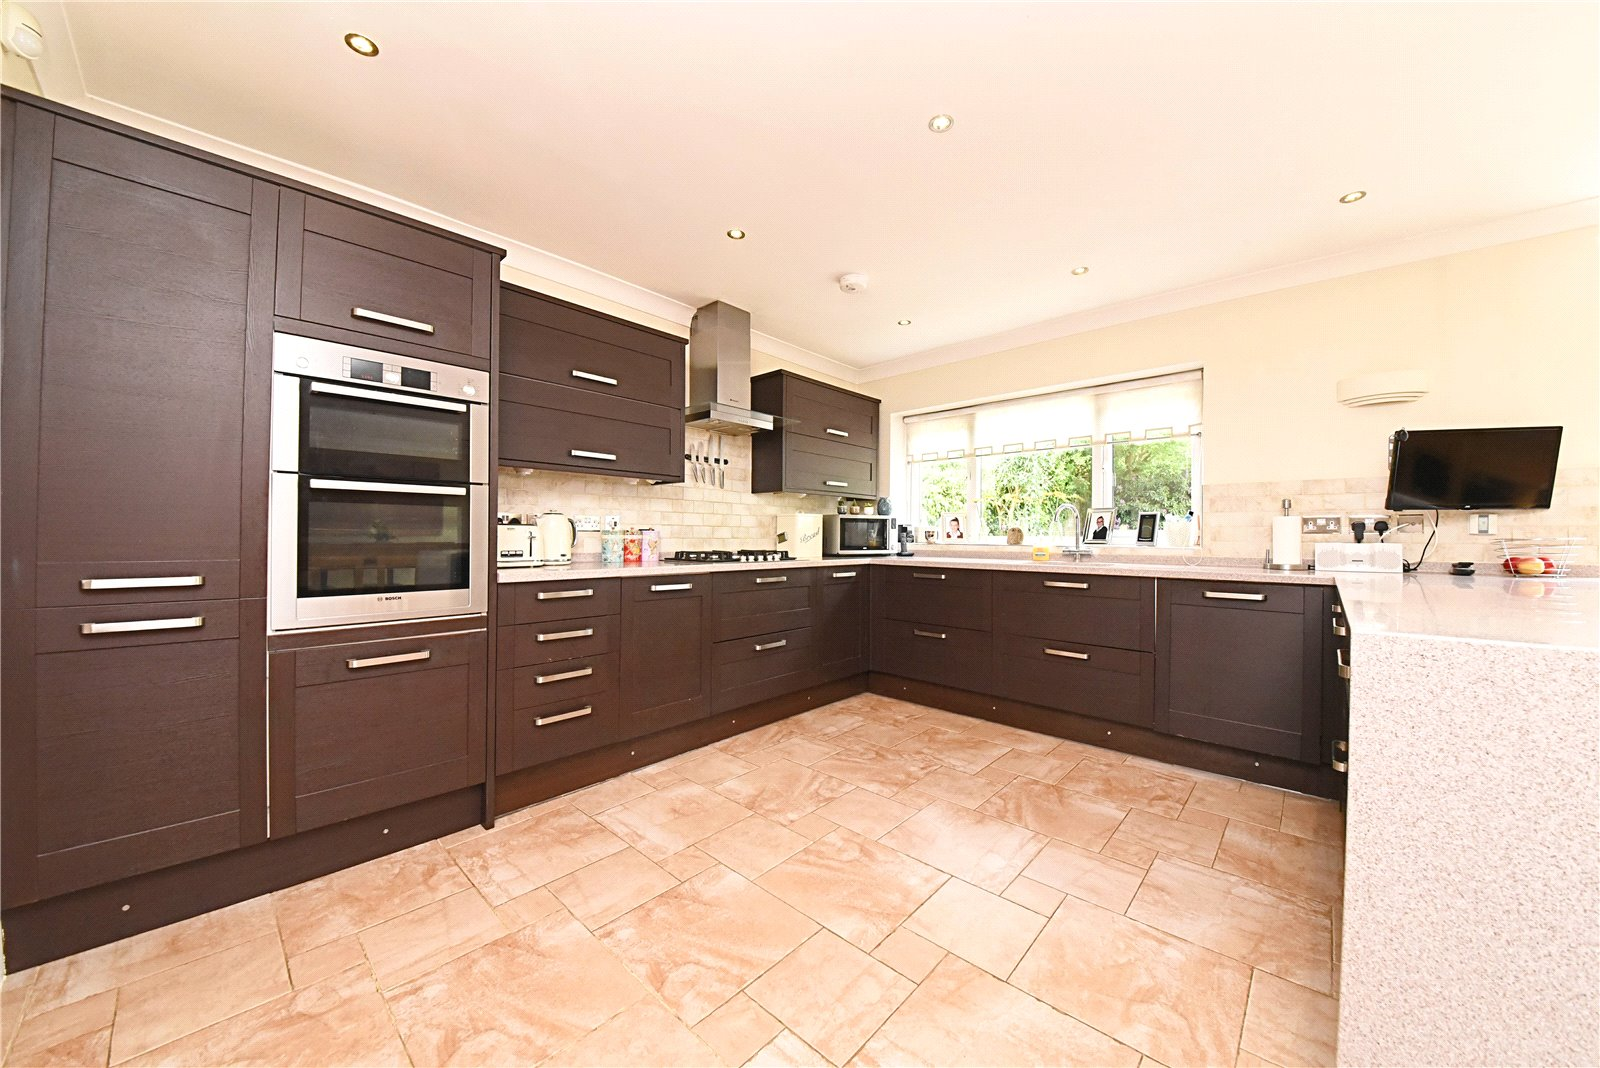 4 bed house for sale in Stanmore, HA7 3AZ 2